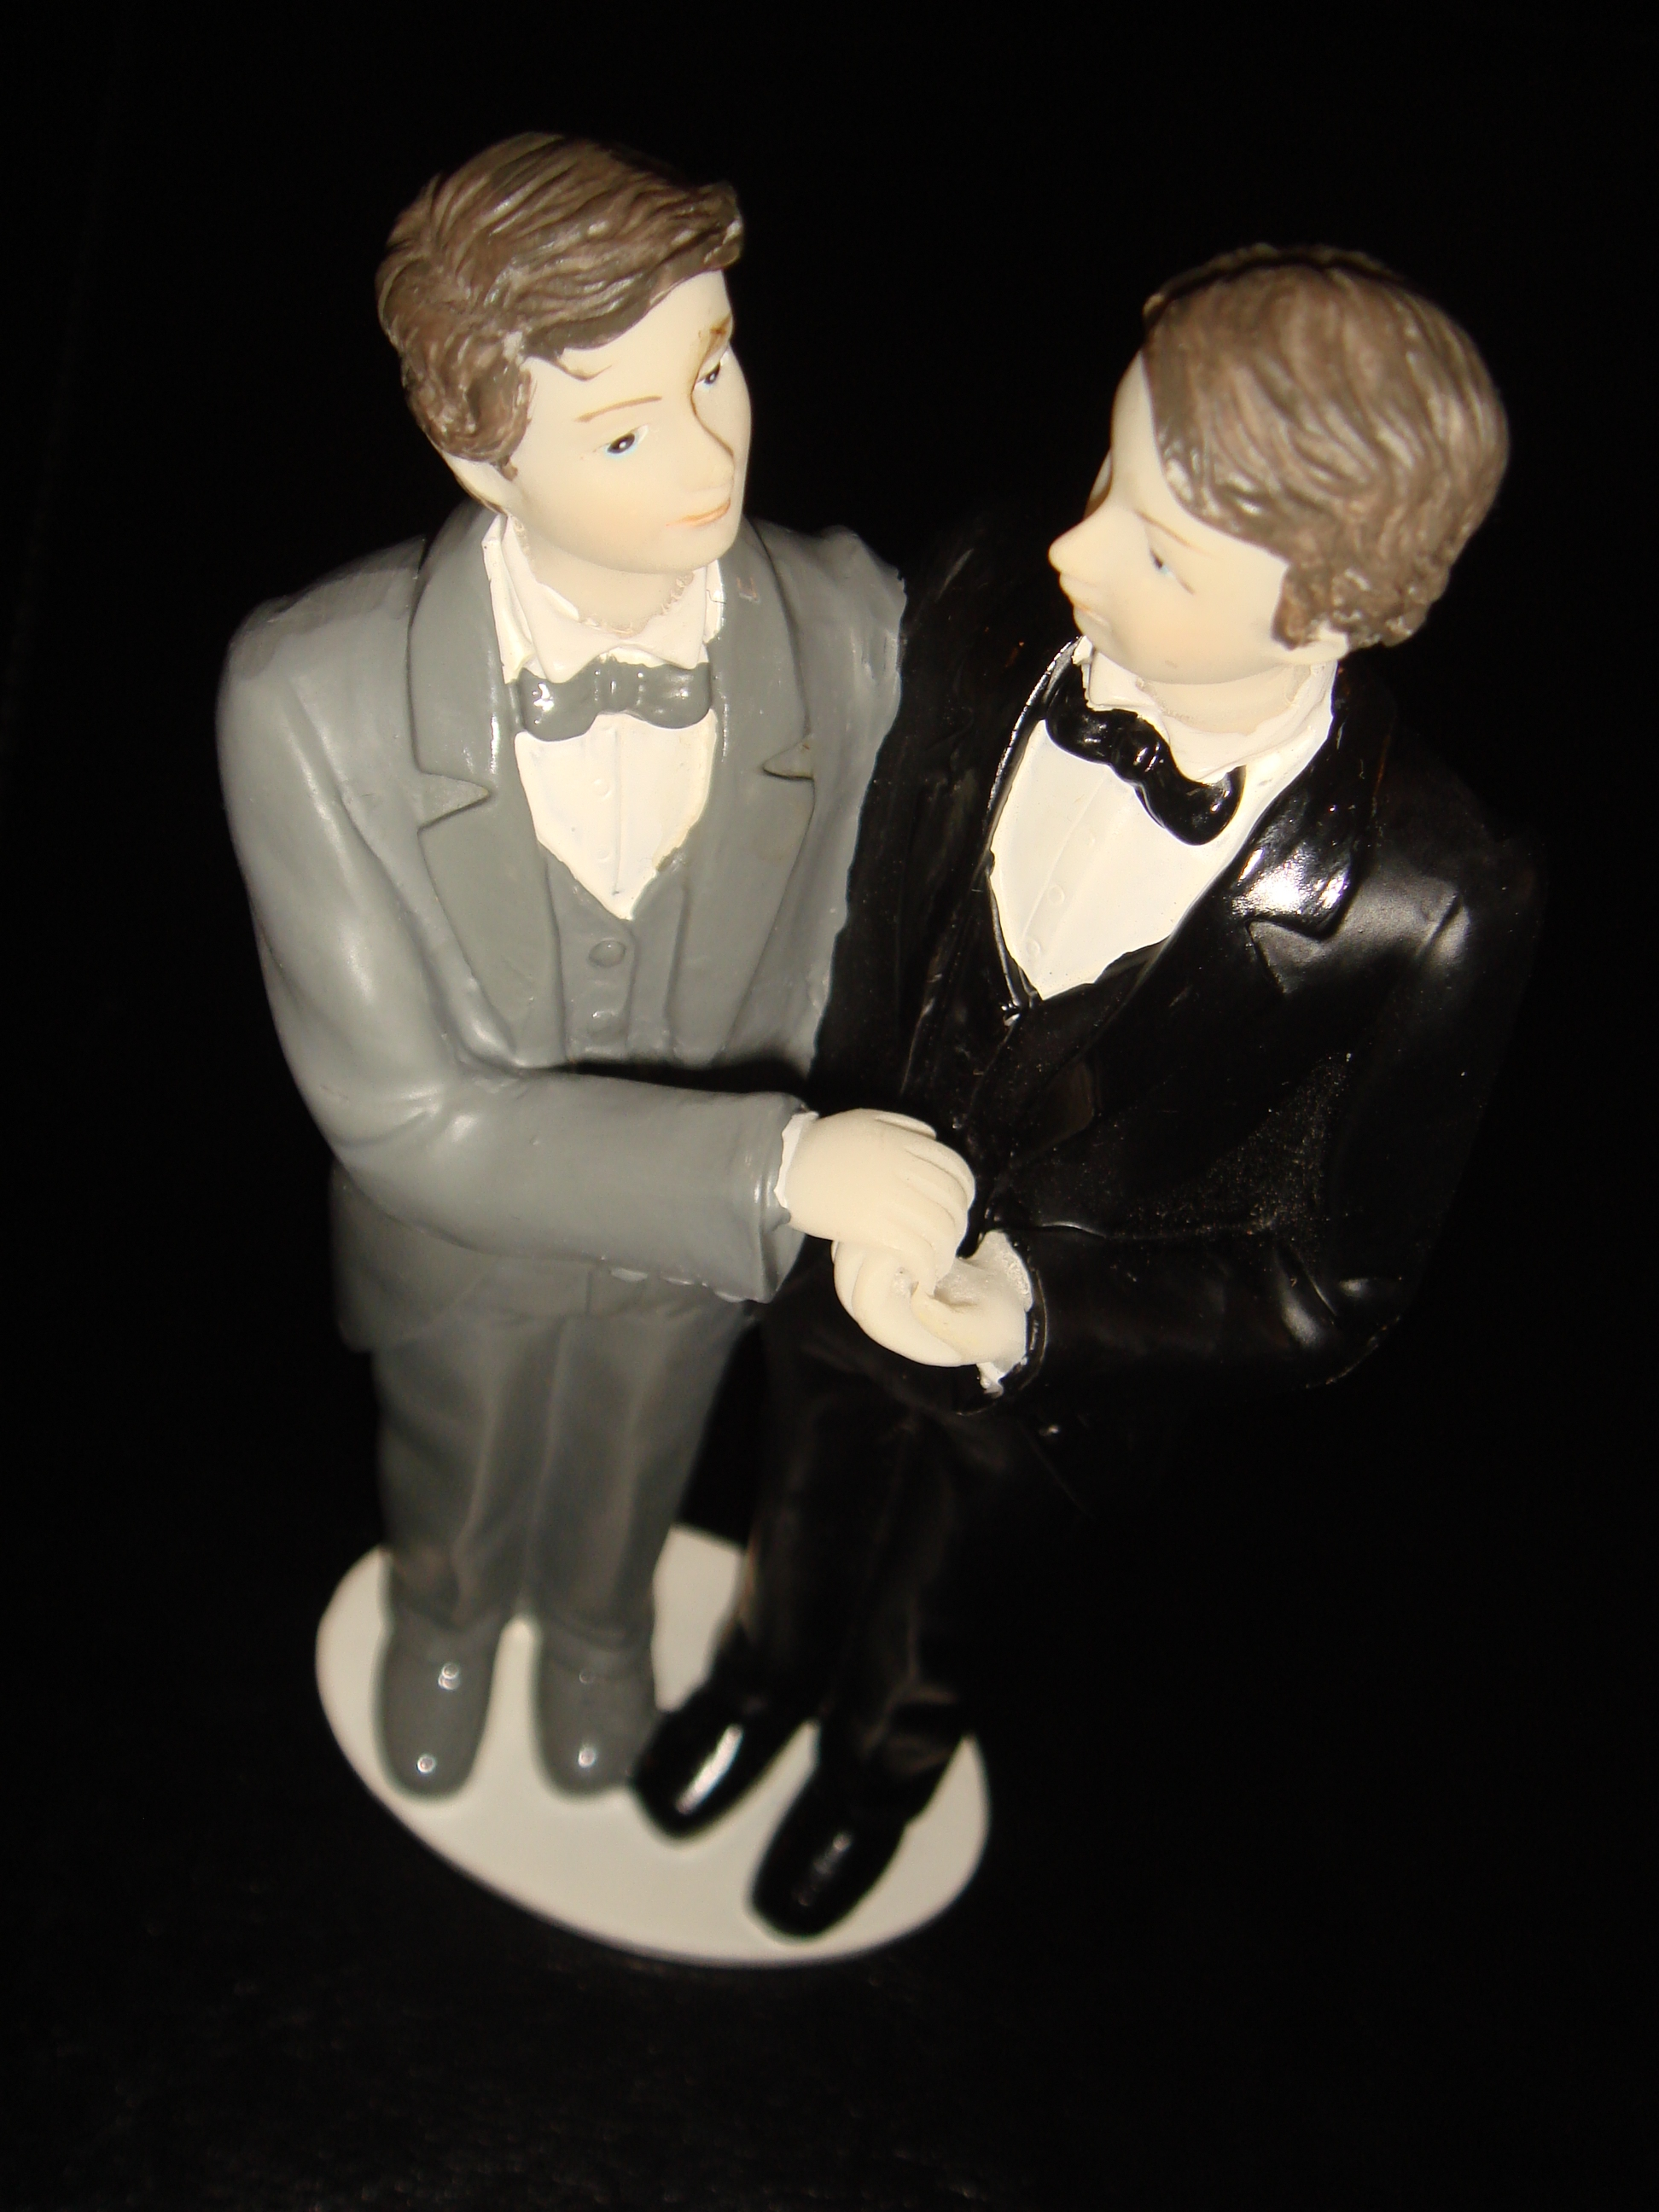 Gay_wedding_a_by_Stefano_Bolognini